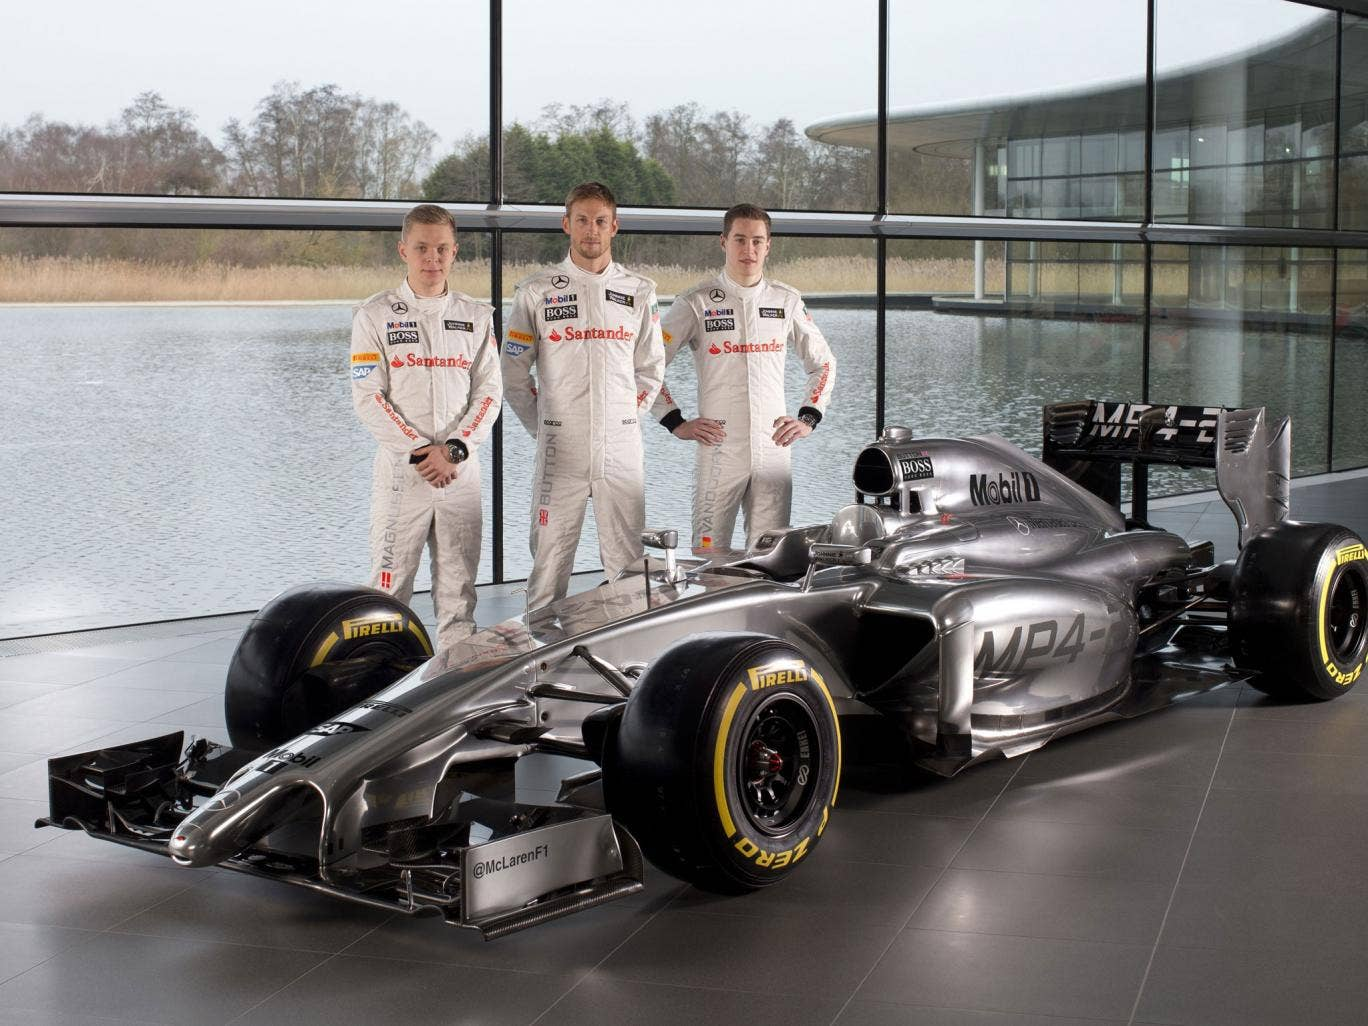 McLaren drivers (left to right) Kevin Magnussen, Jenson Button and Stoffel Vandoorne at the launch of the new MP4-29 car at their base in Woking